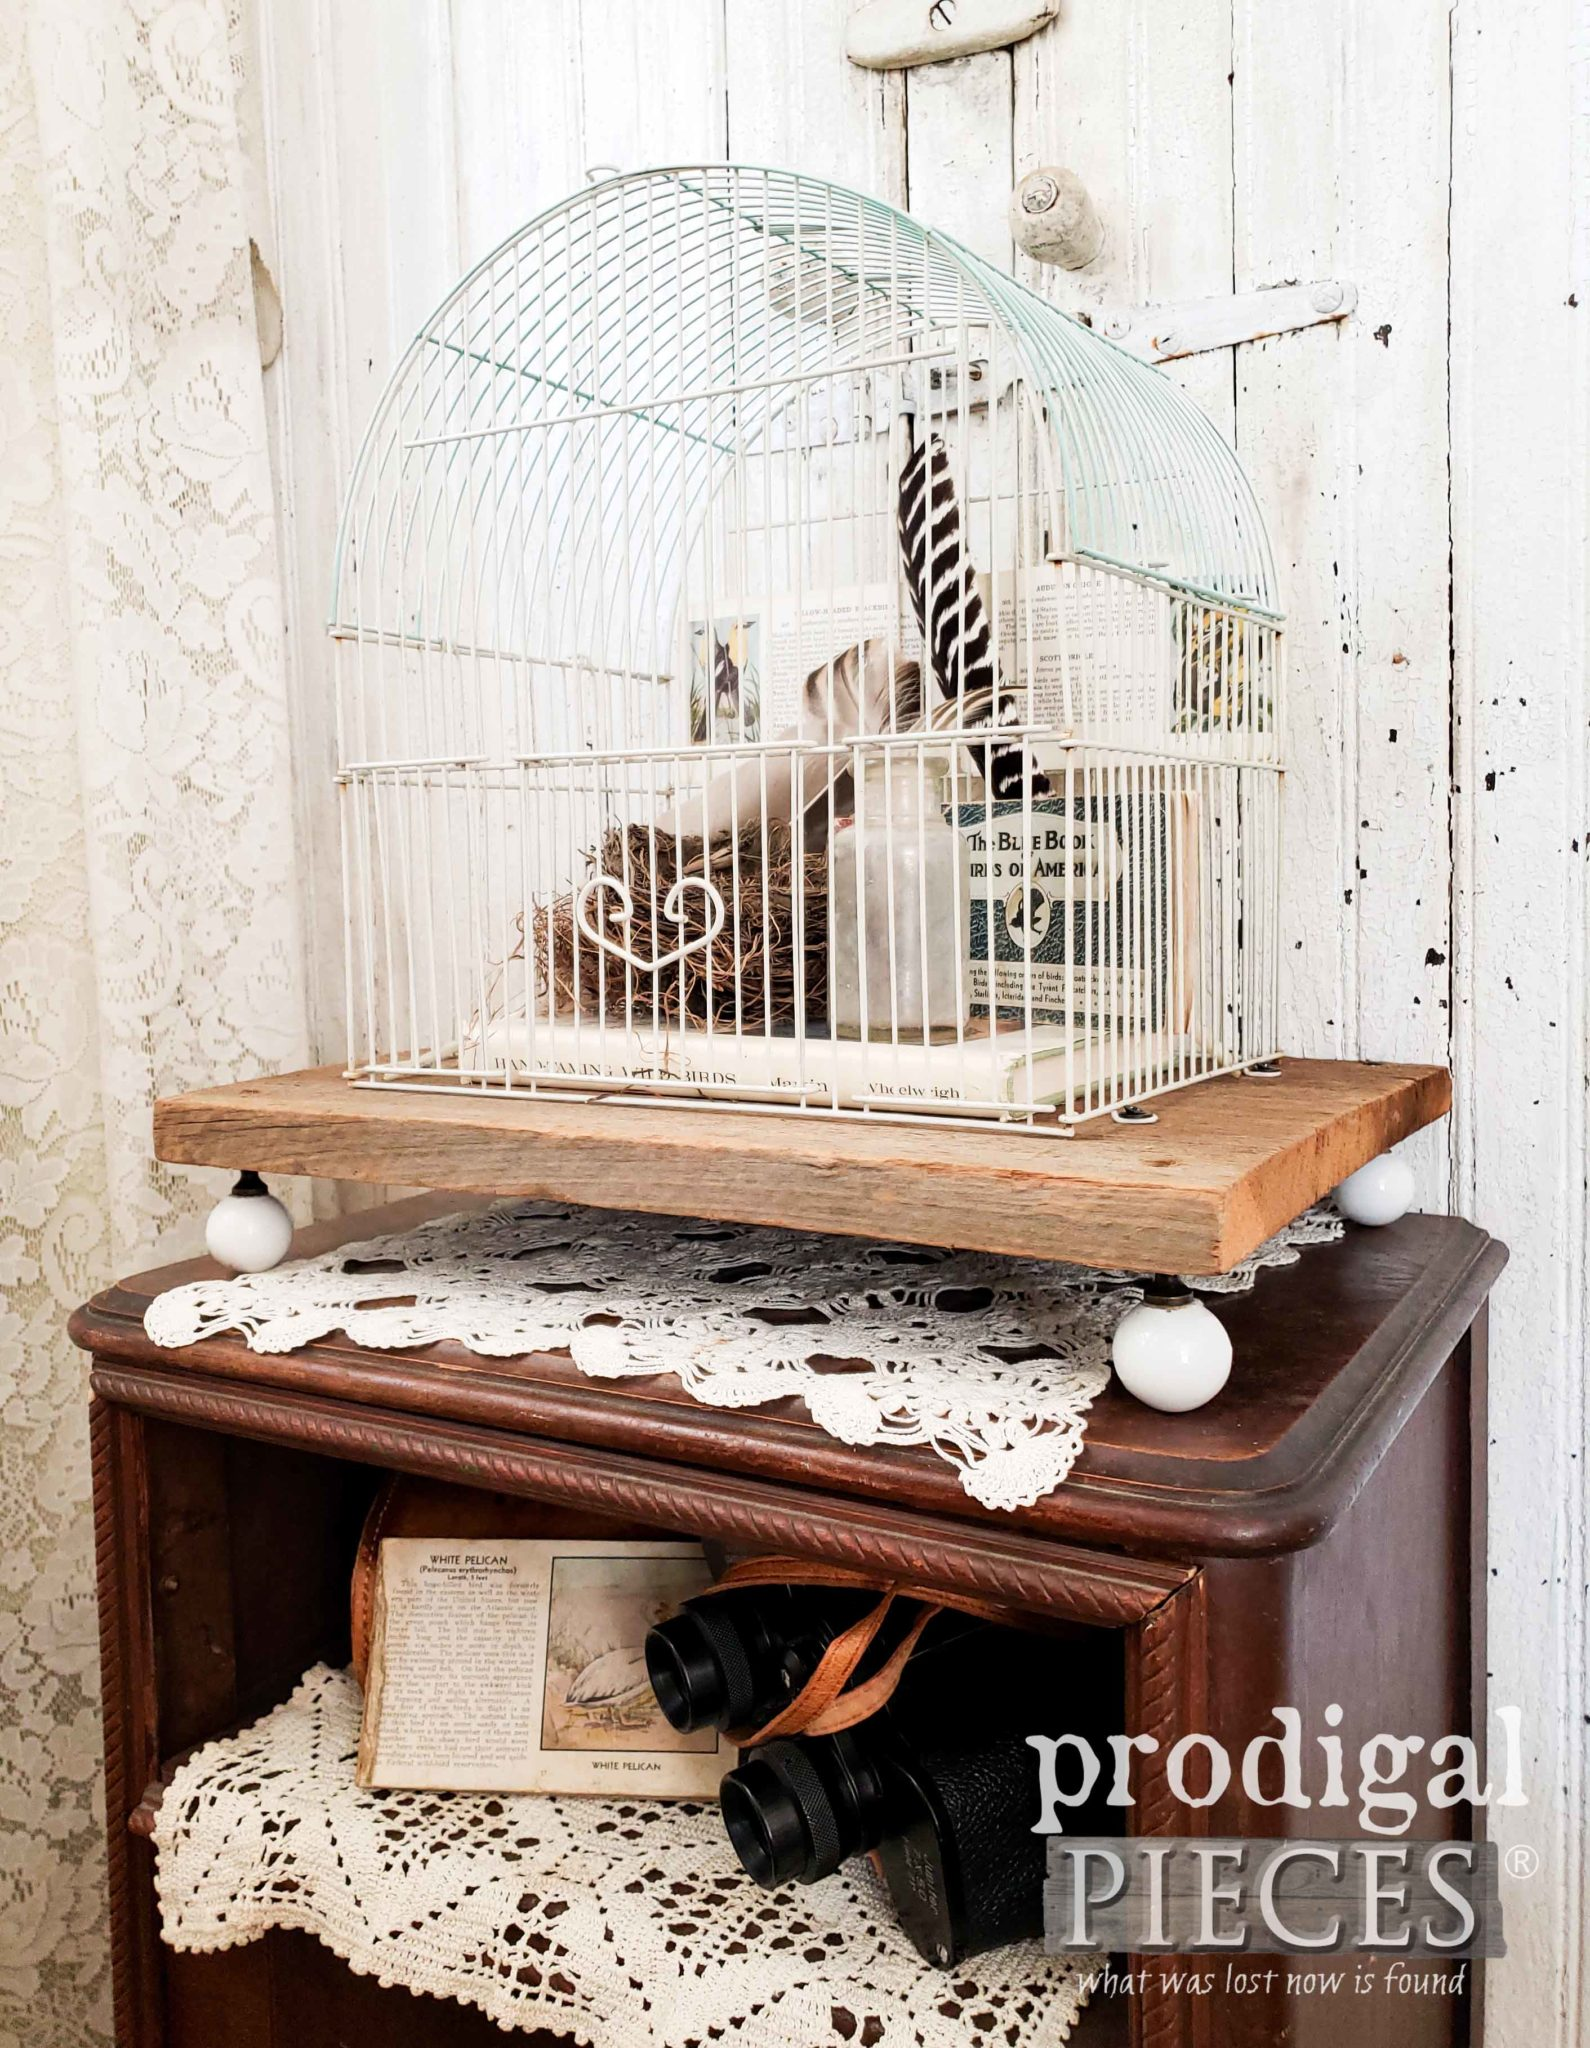 Rustic Chic Bird Cage Stand for Farmhouse Decor by Larissa of Prodigal Pieces | prodigalpieces.com #prodigalpieces #homedecor #diy #farmhouse #home #rustic